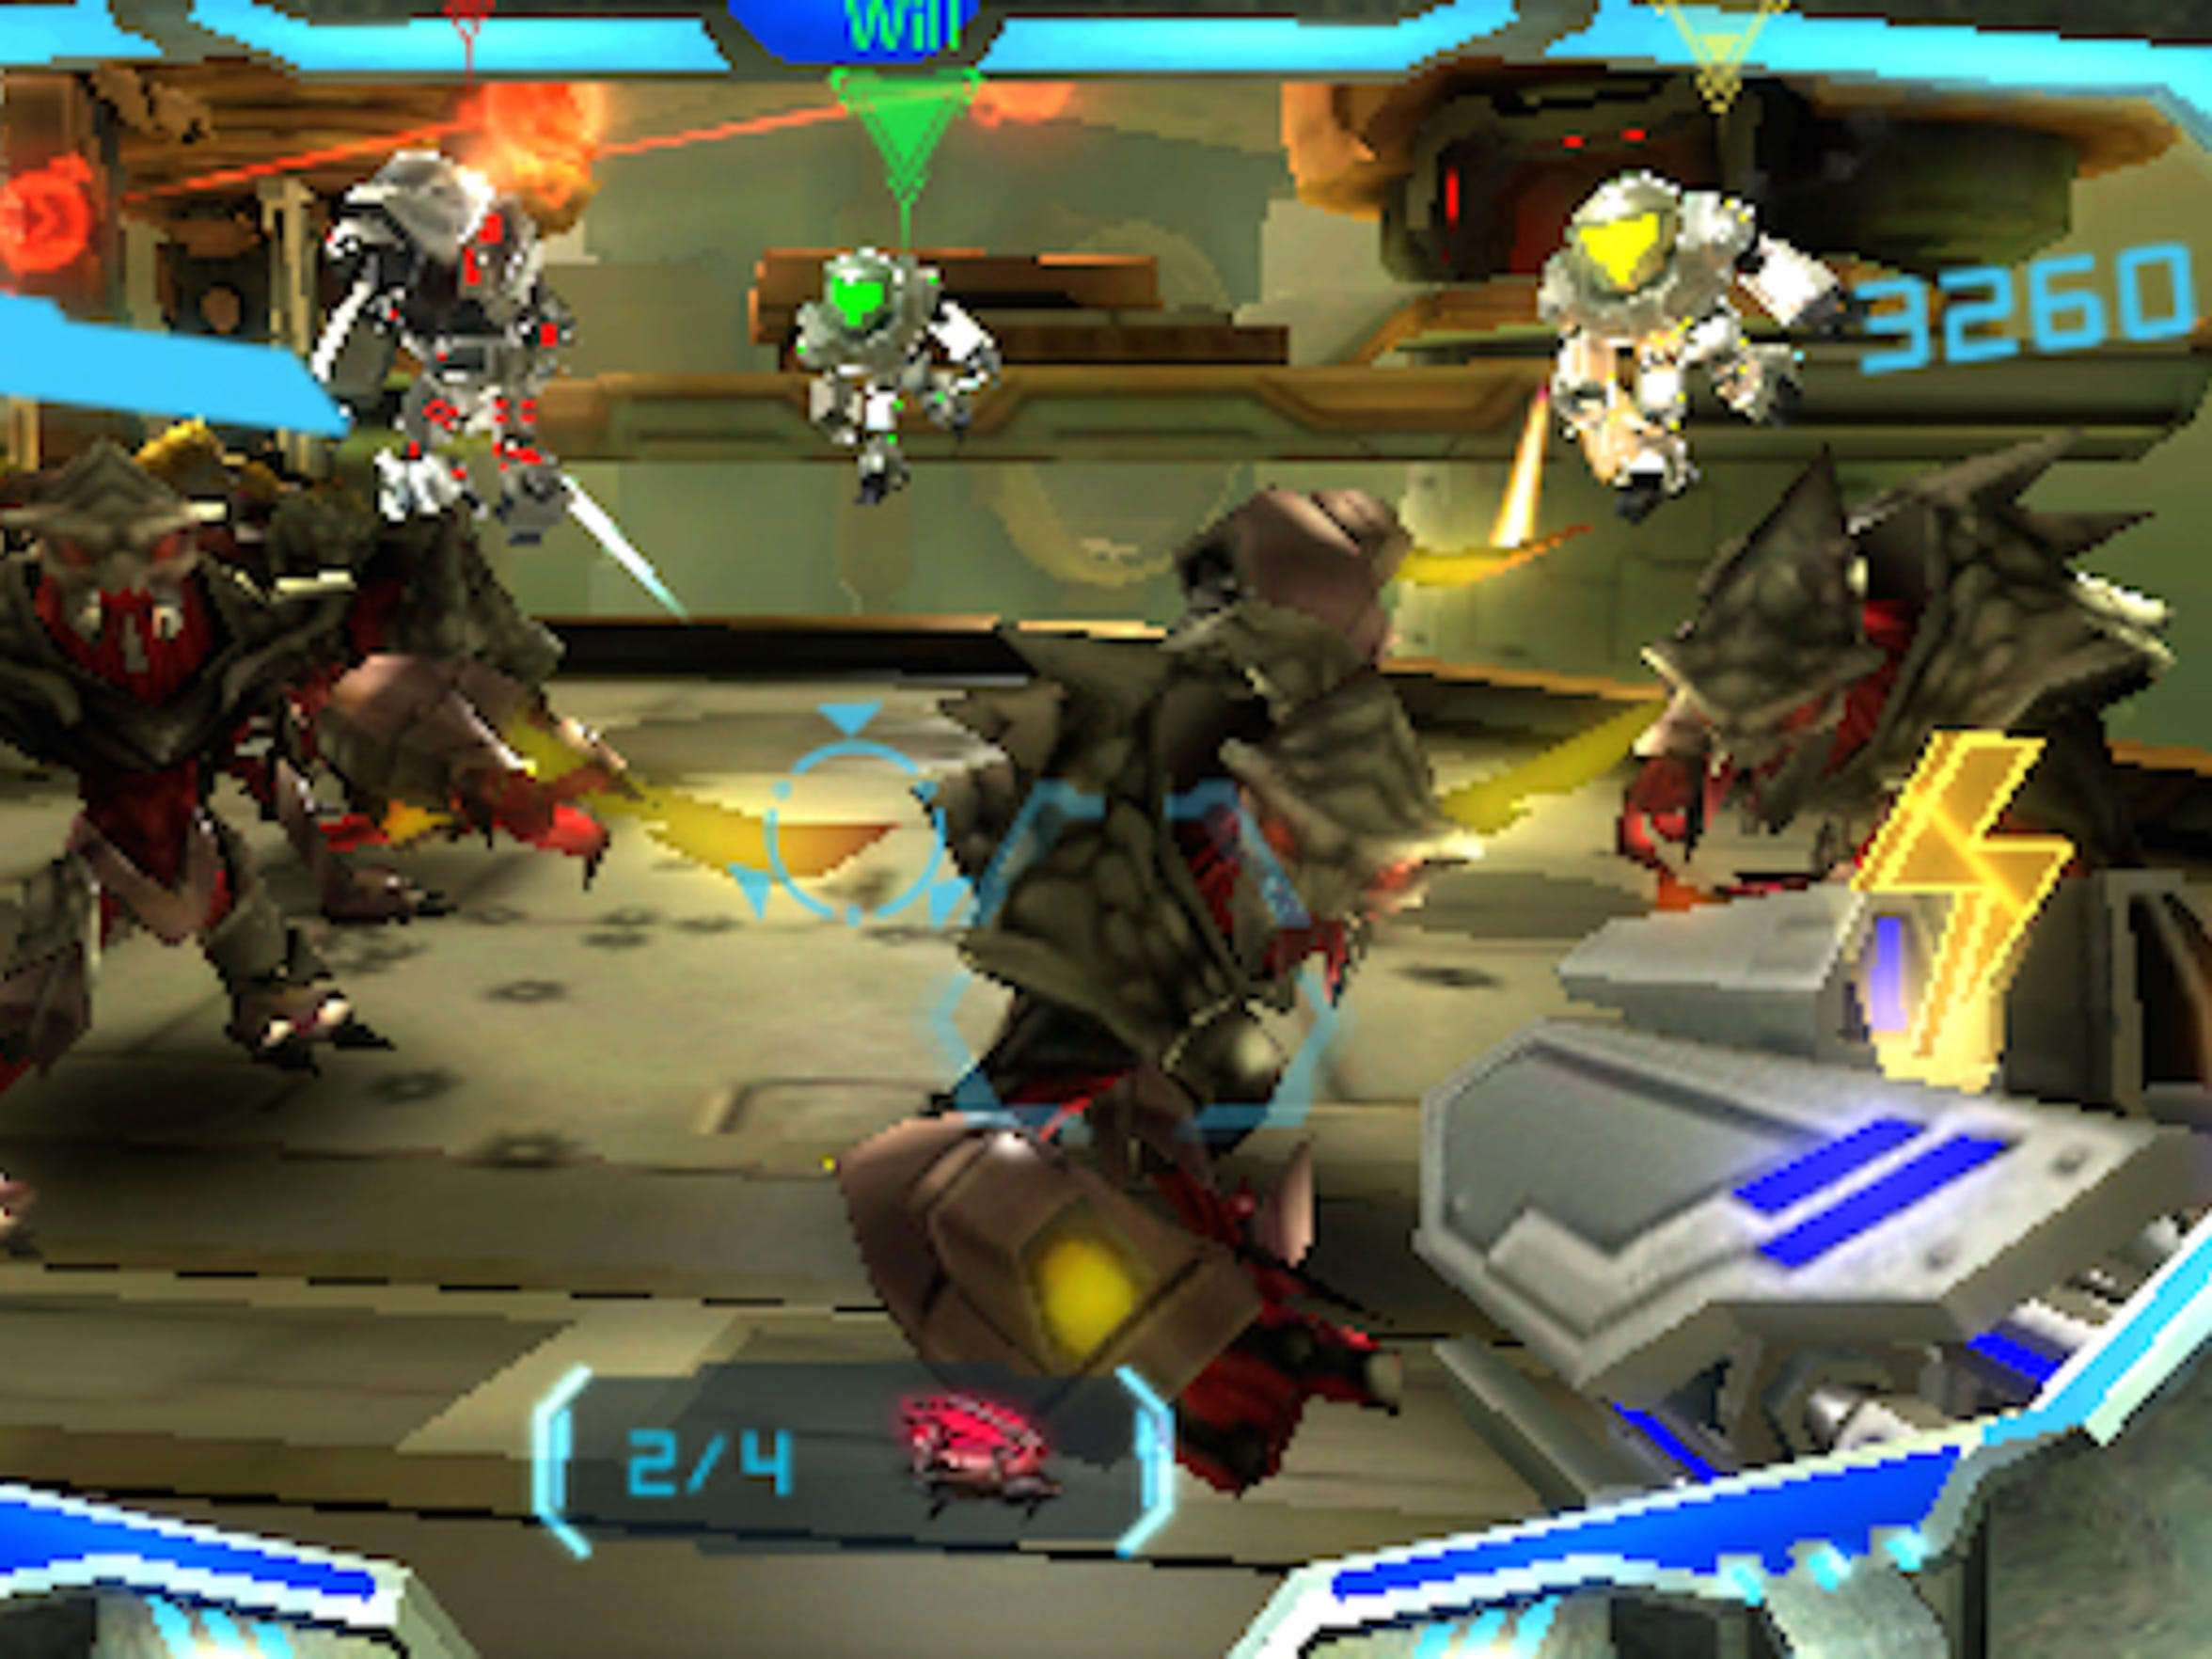 """Play with your buddies in the campaign co-op for """"Metroid"""